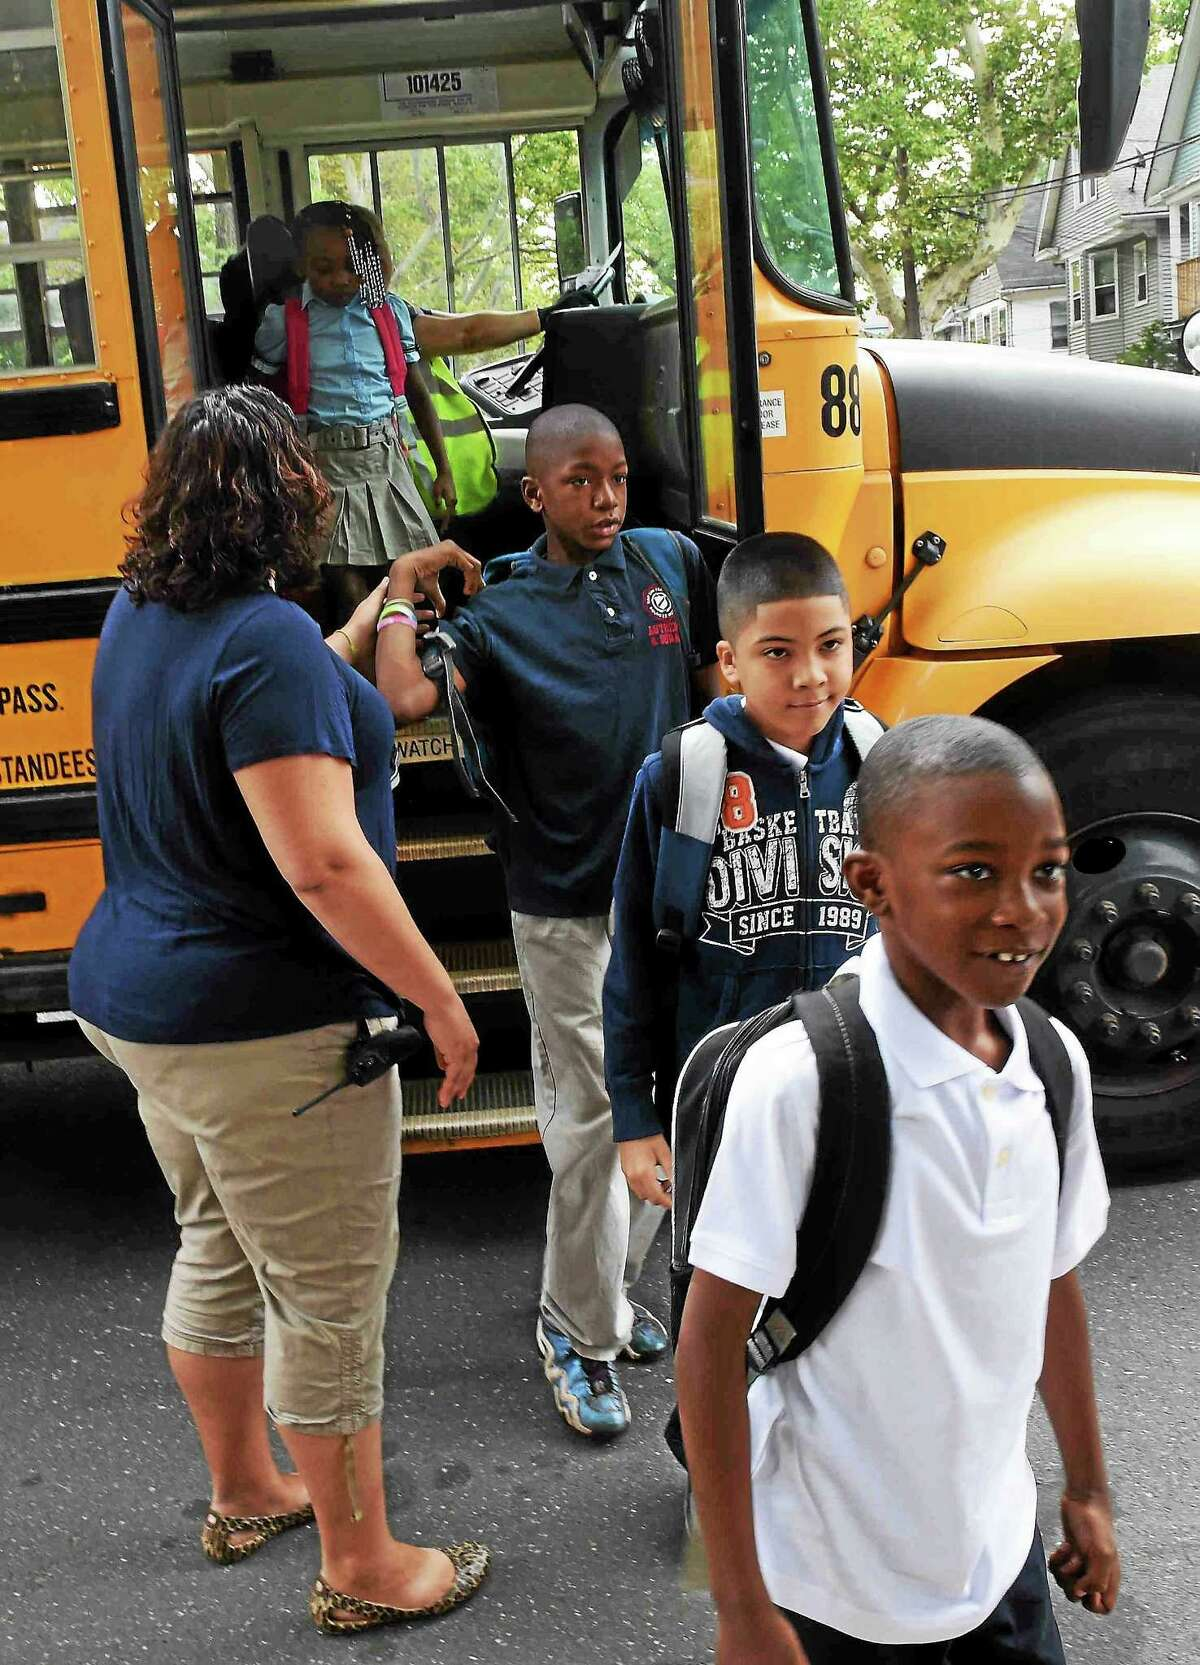 Lincoln-Bassett Elementary School students, staff and parents are welcomed back to the first day of the new school year on Aug. 31, and met with applause, handshakes, cheering and encouraging words by City of New Haven Public Schools staff, local politicians, community leaders, New Haven police and fire officers and residents in New Haven.